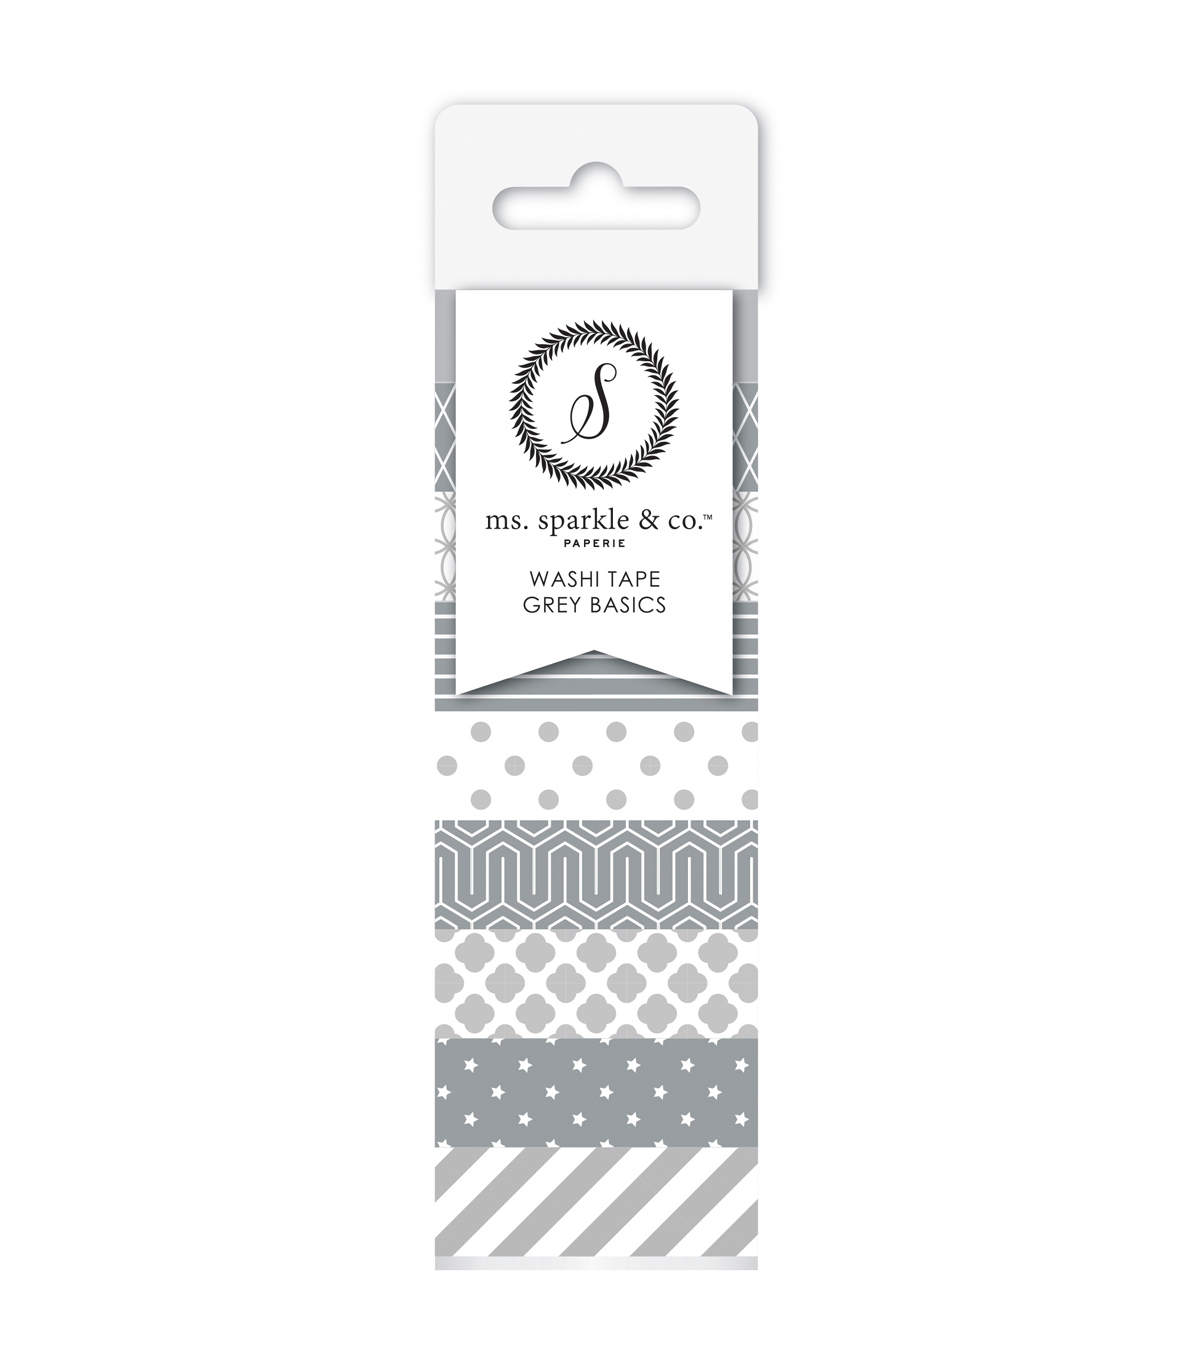 Ms. Sparkle & Co. 8 pk Washi Tapes 0.6 mmx10 yds-Gray Basics